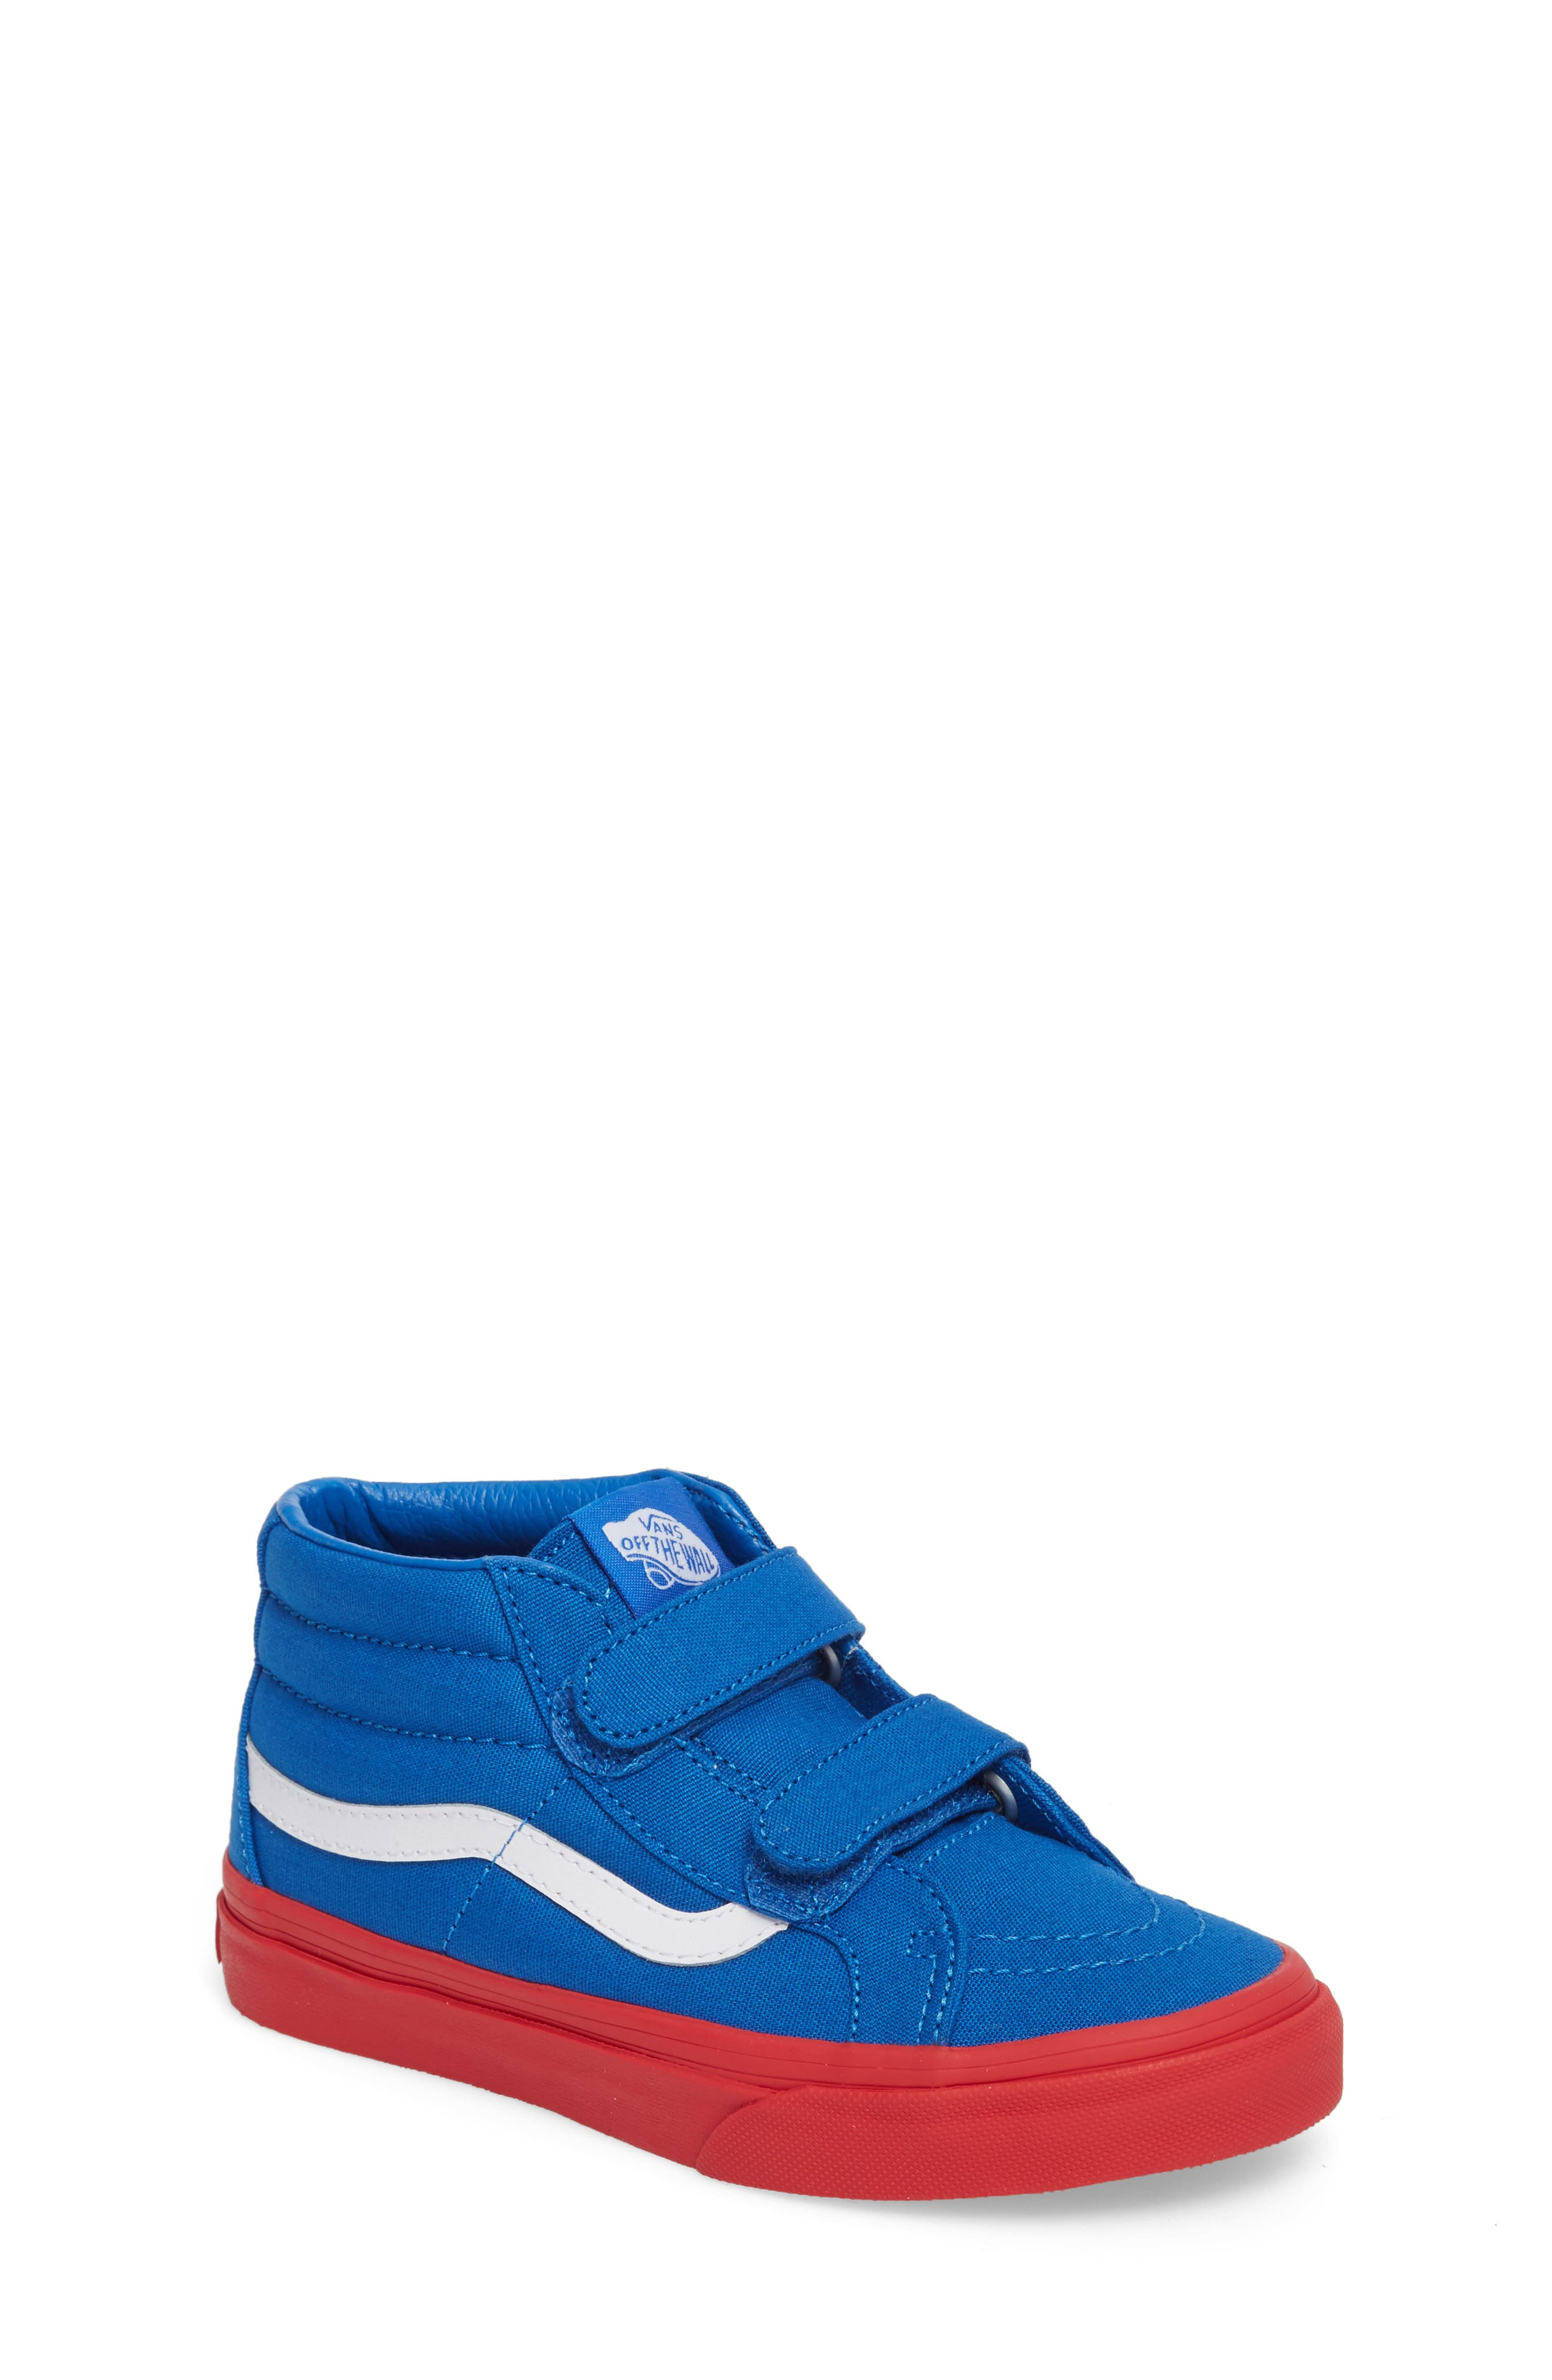 Sk8-Mid Reissue Sneaker,                         Main,                         color, 420